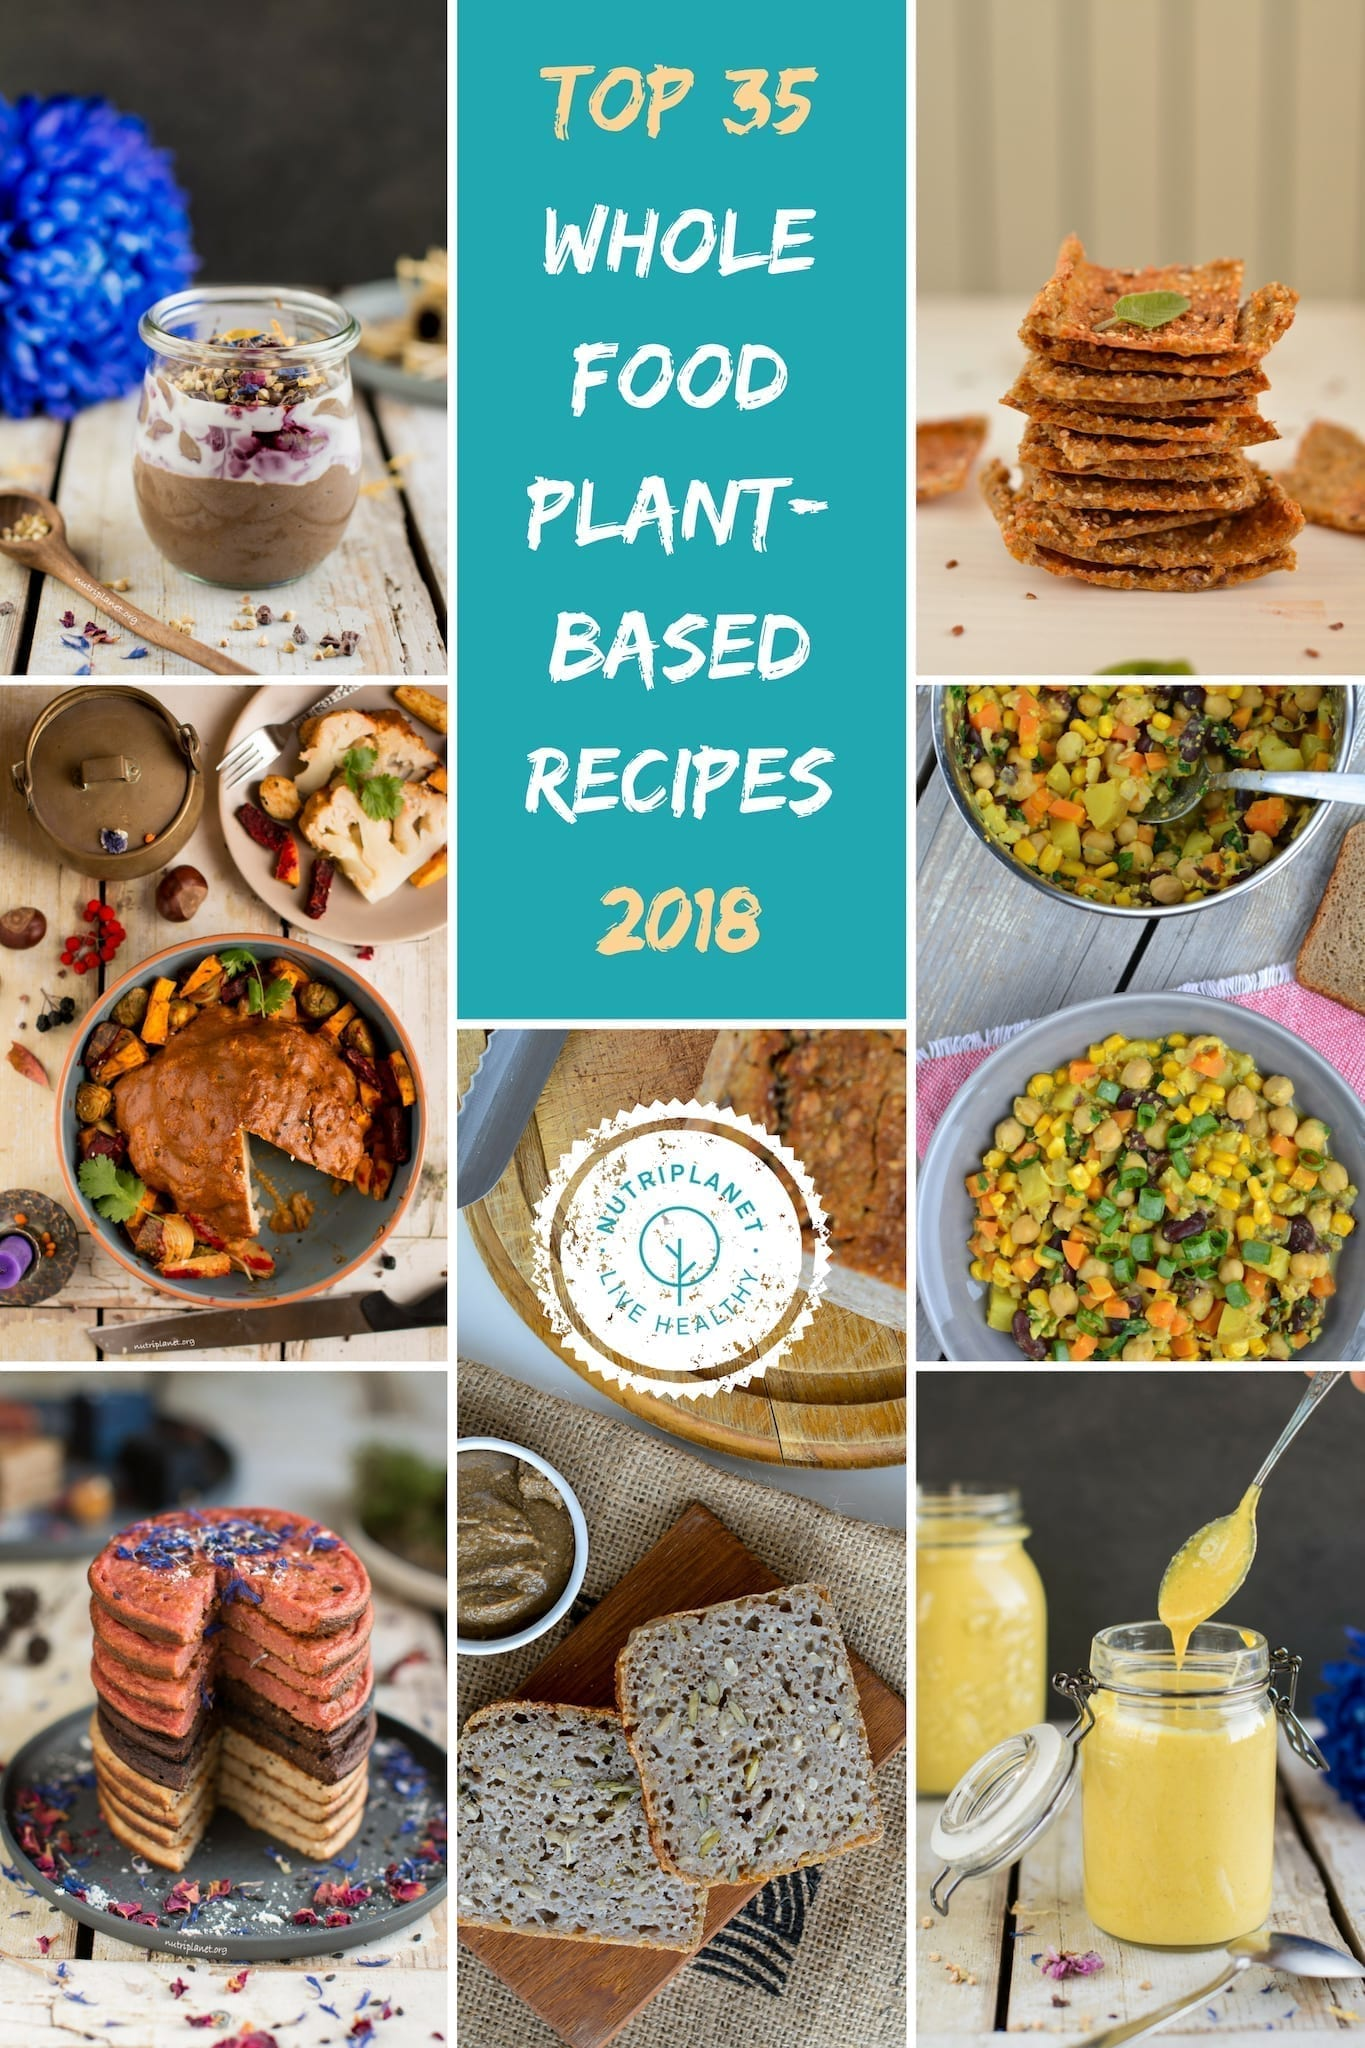 Top 35 Whole Food Plant-Based Recipes in 2018